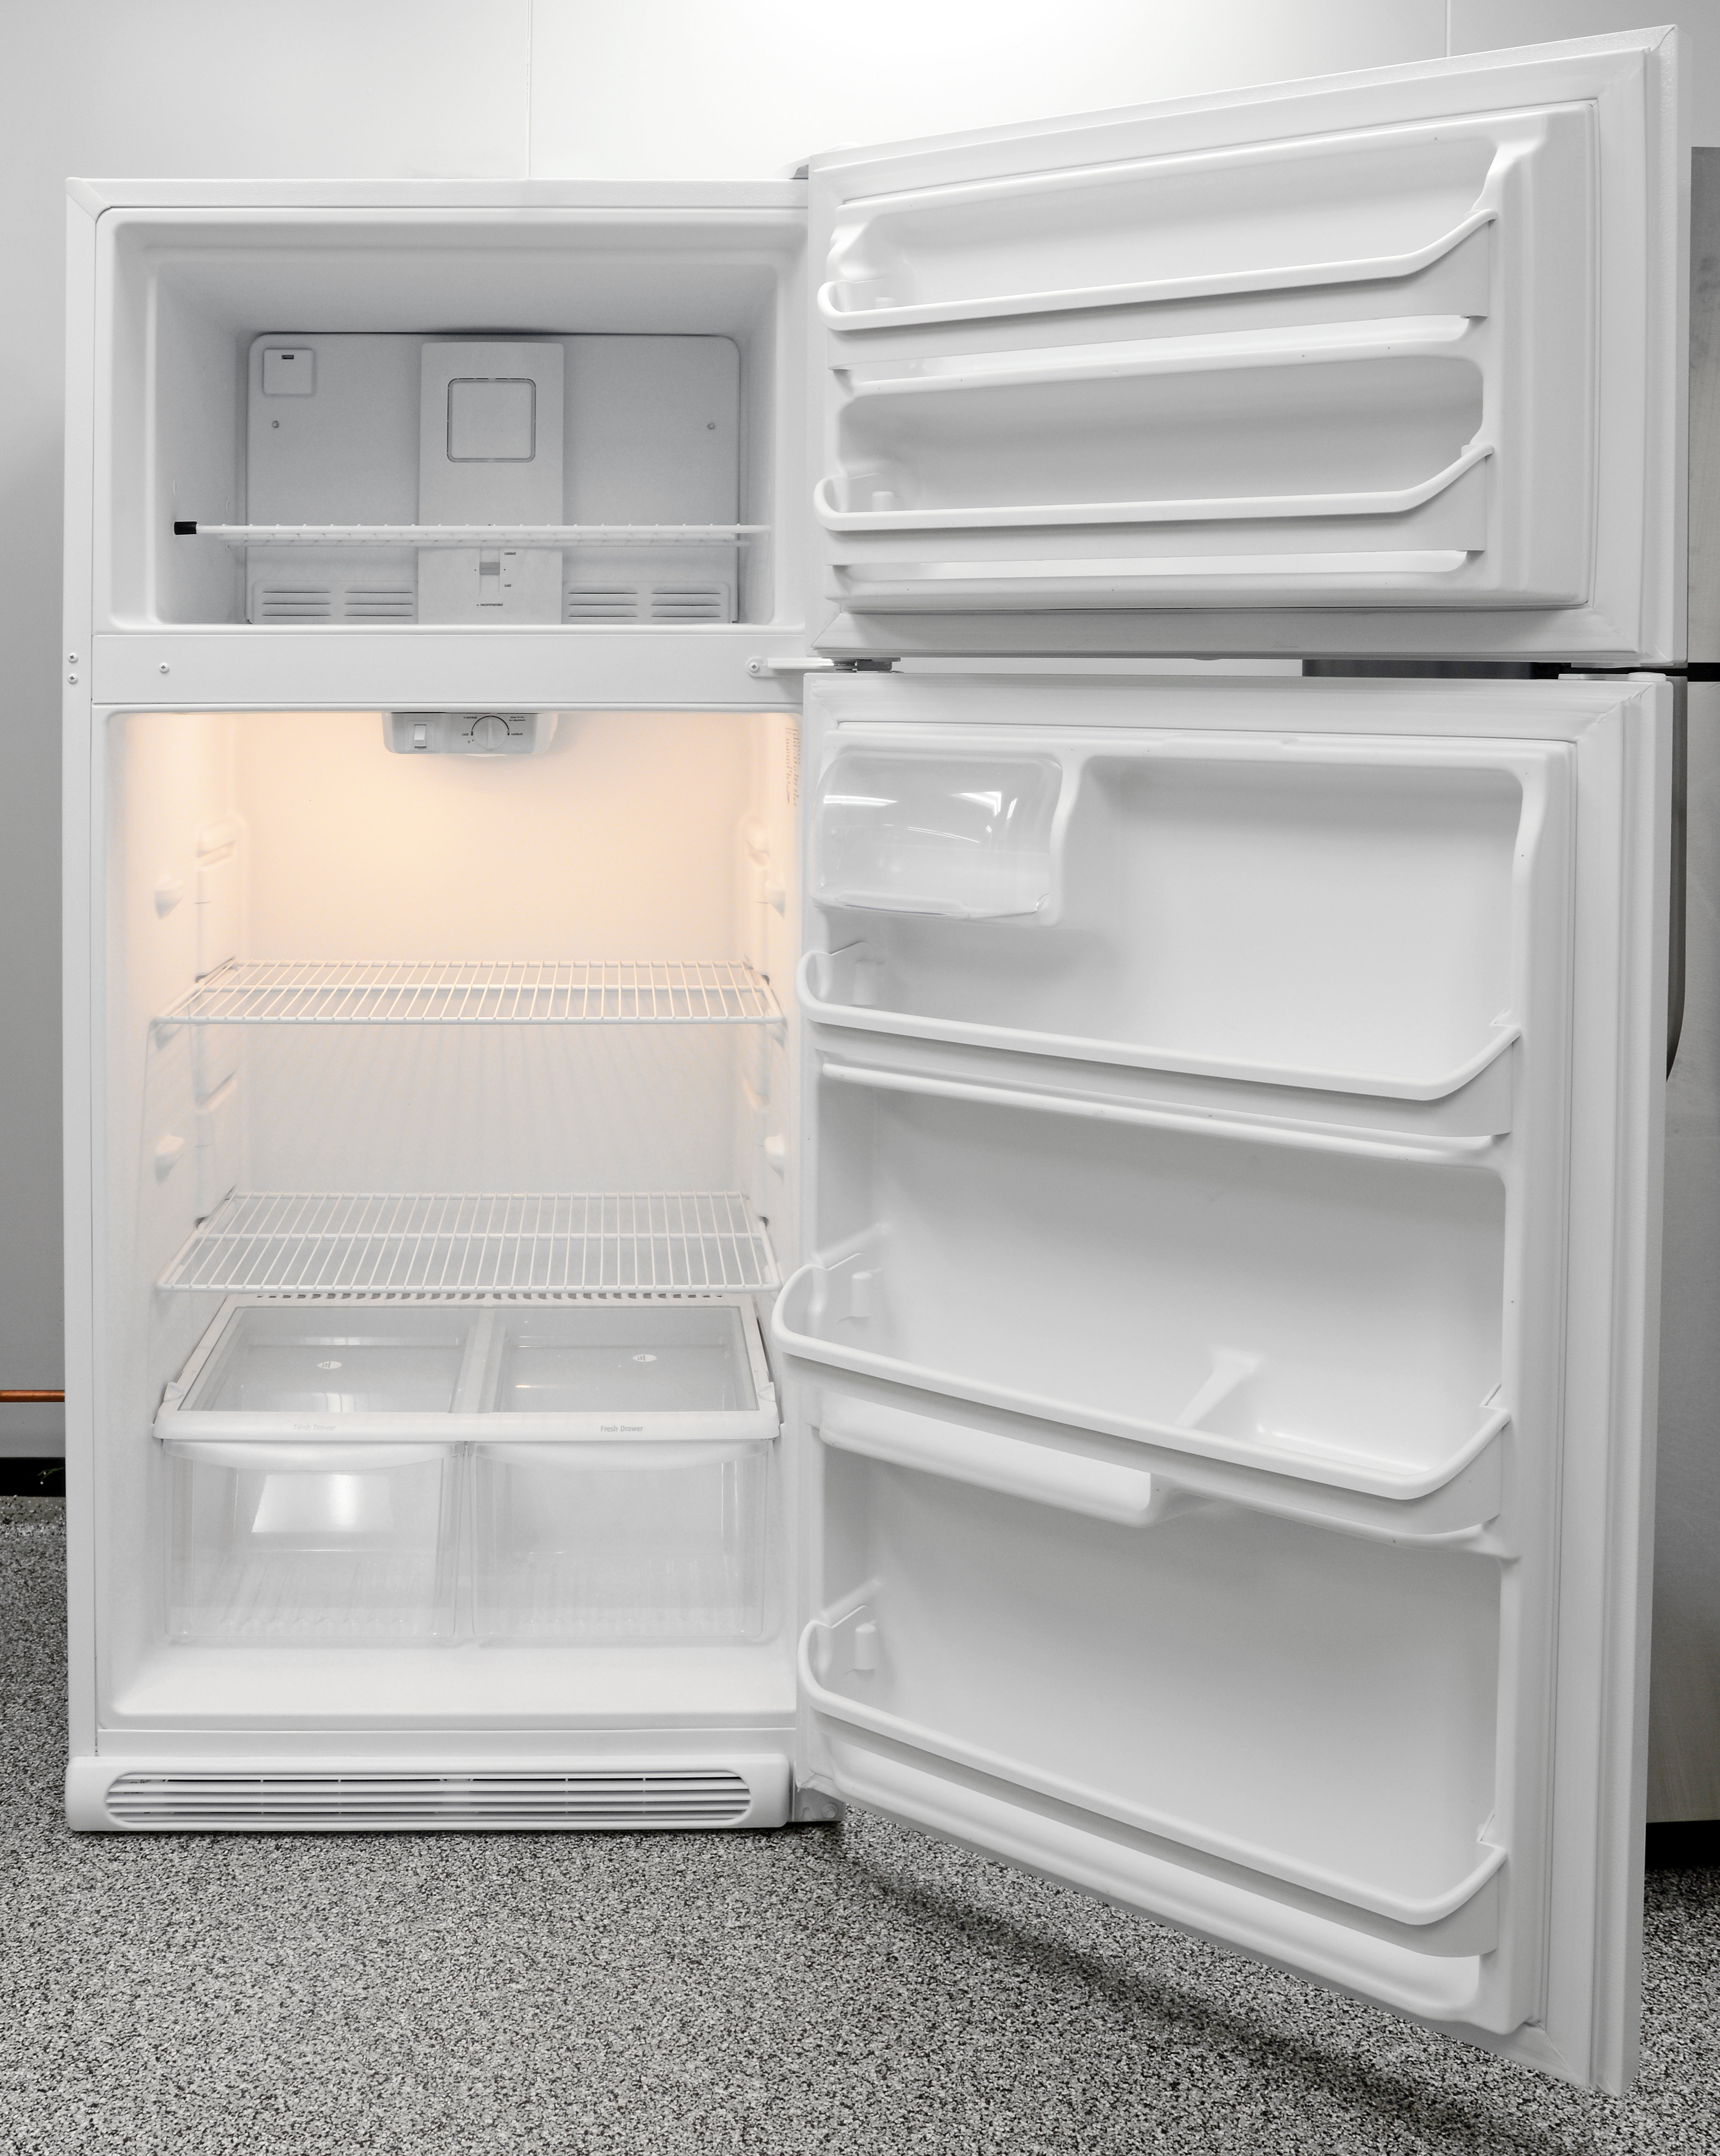 The Frigidaire FFTR1814QW is both incredibly efficient, and incredibly affordable.